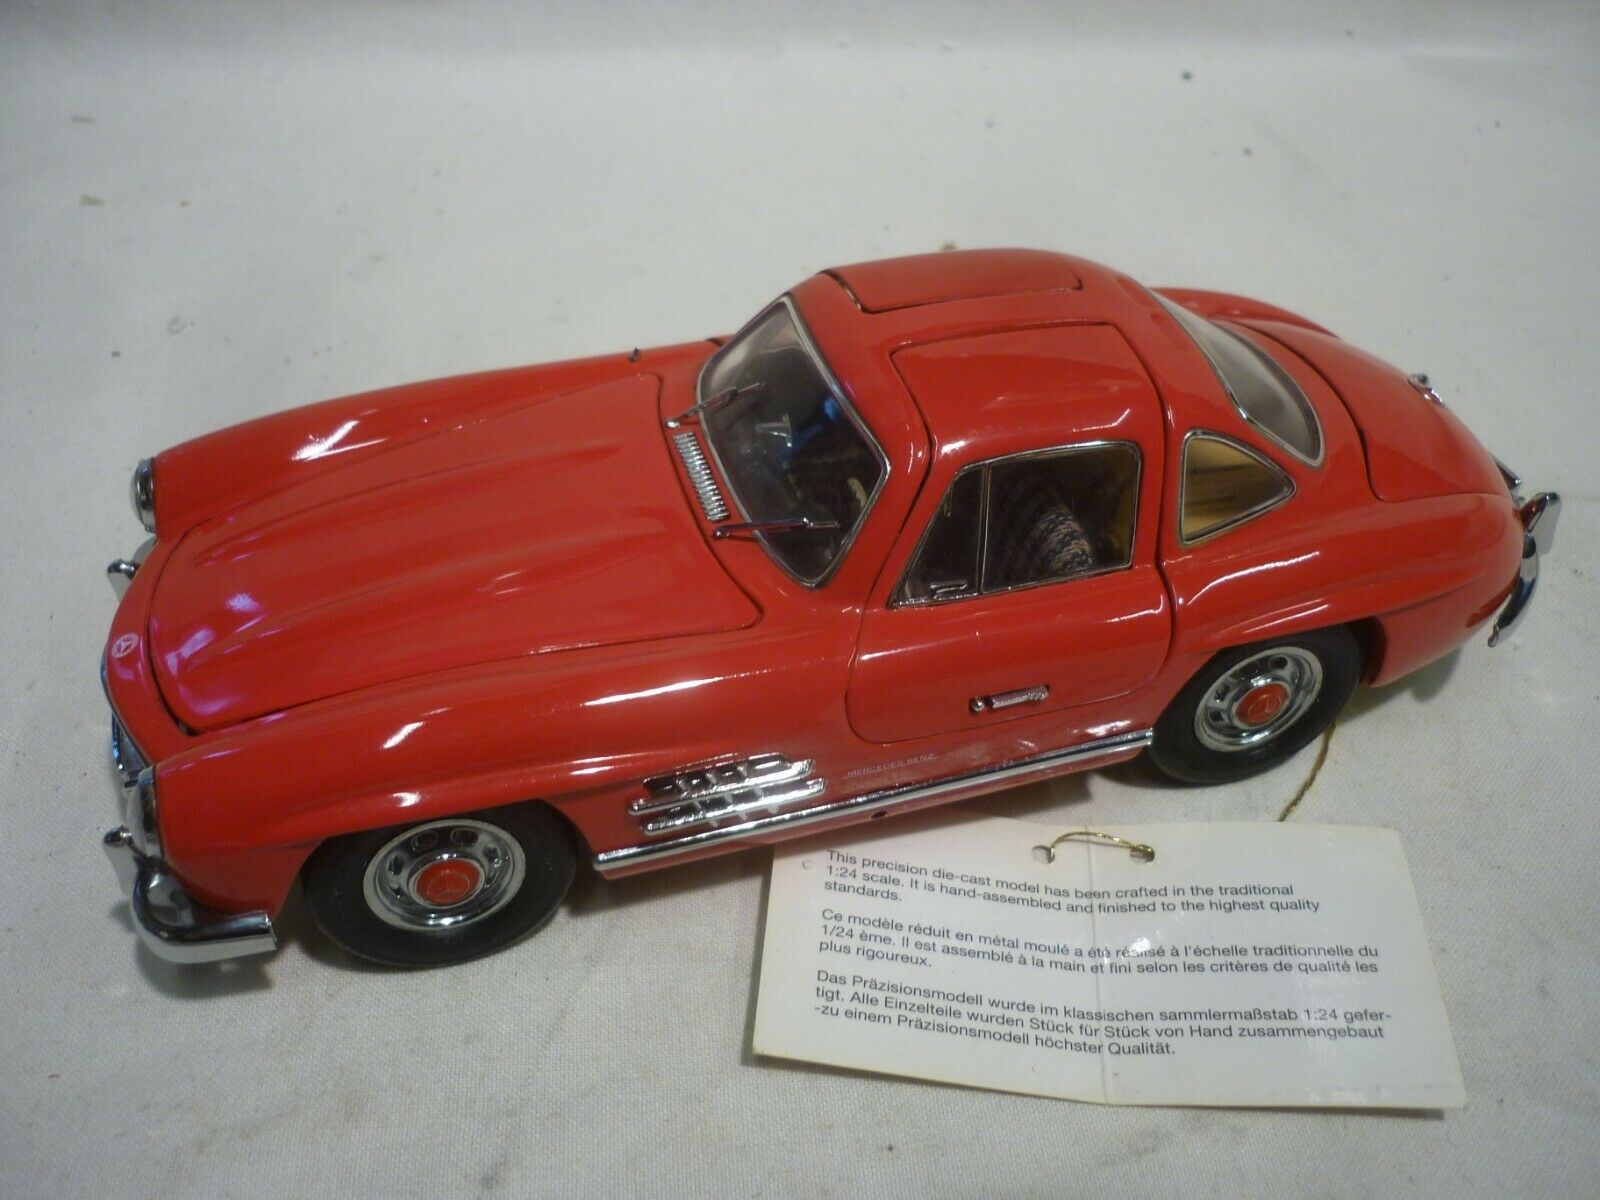 A Franklin mint scale model of a 1954 Mercedes Benz 300sl with Gull wing doors